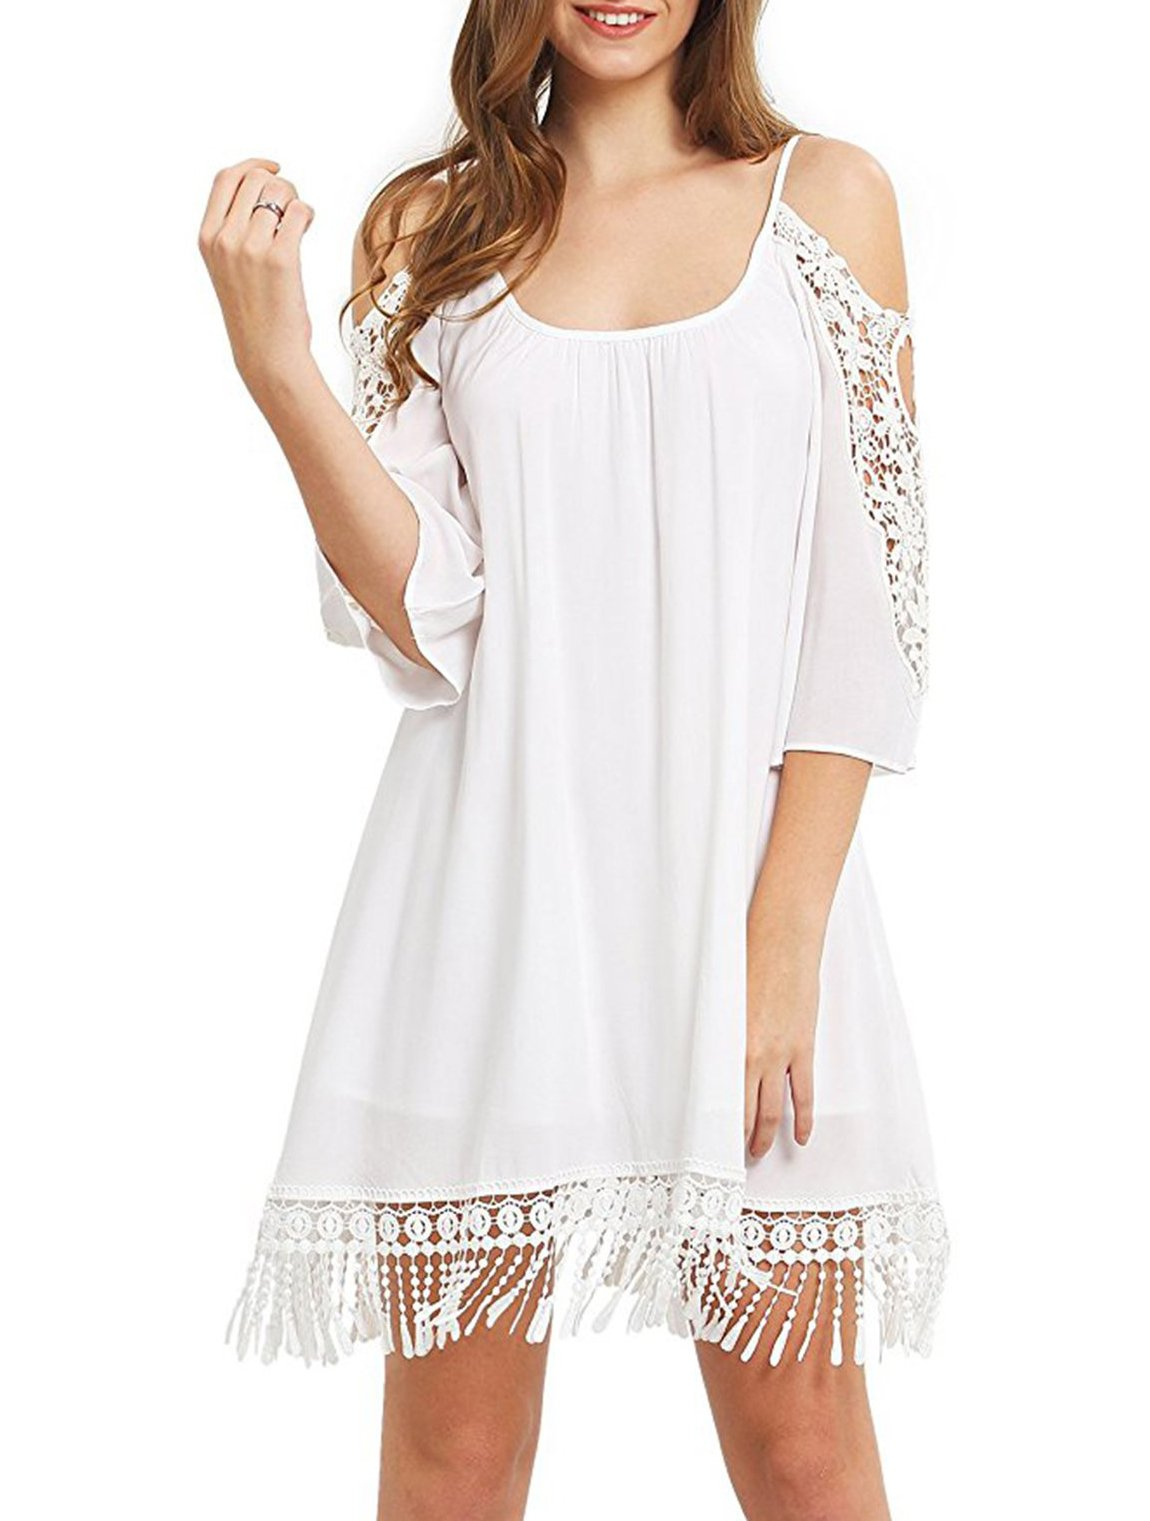 Jollymoda Women's Summer Cold Shoulder Crochet Lace Sleeve Loose Beach Dress (White, S)